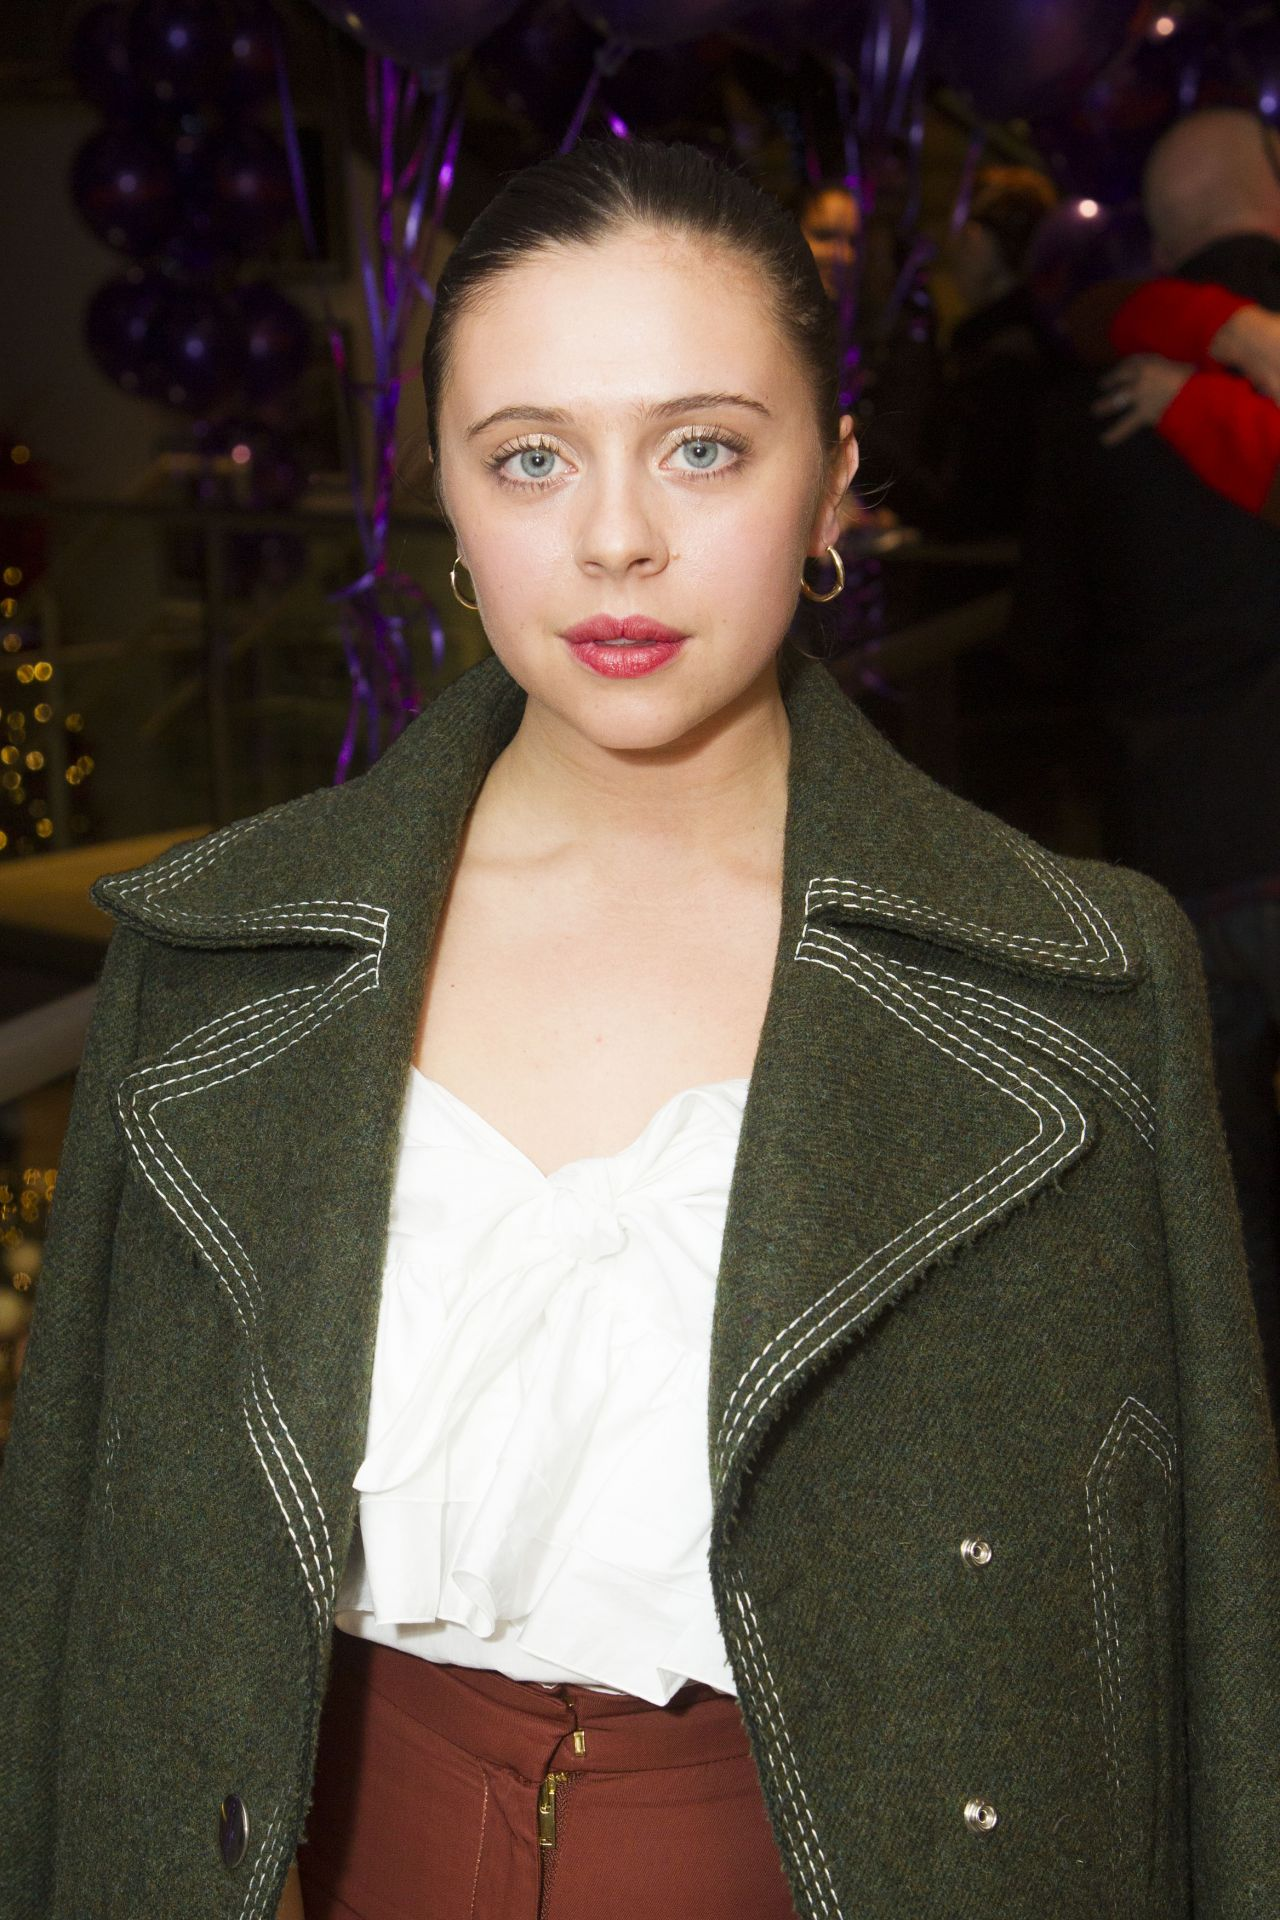 2017 fashion awards nyc - Bel Powley The Red Shoes Ballet Gala London 12 15 2016